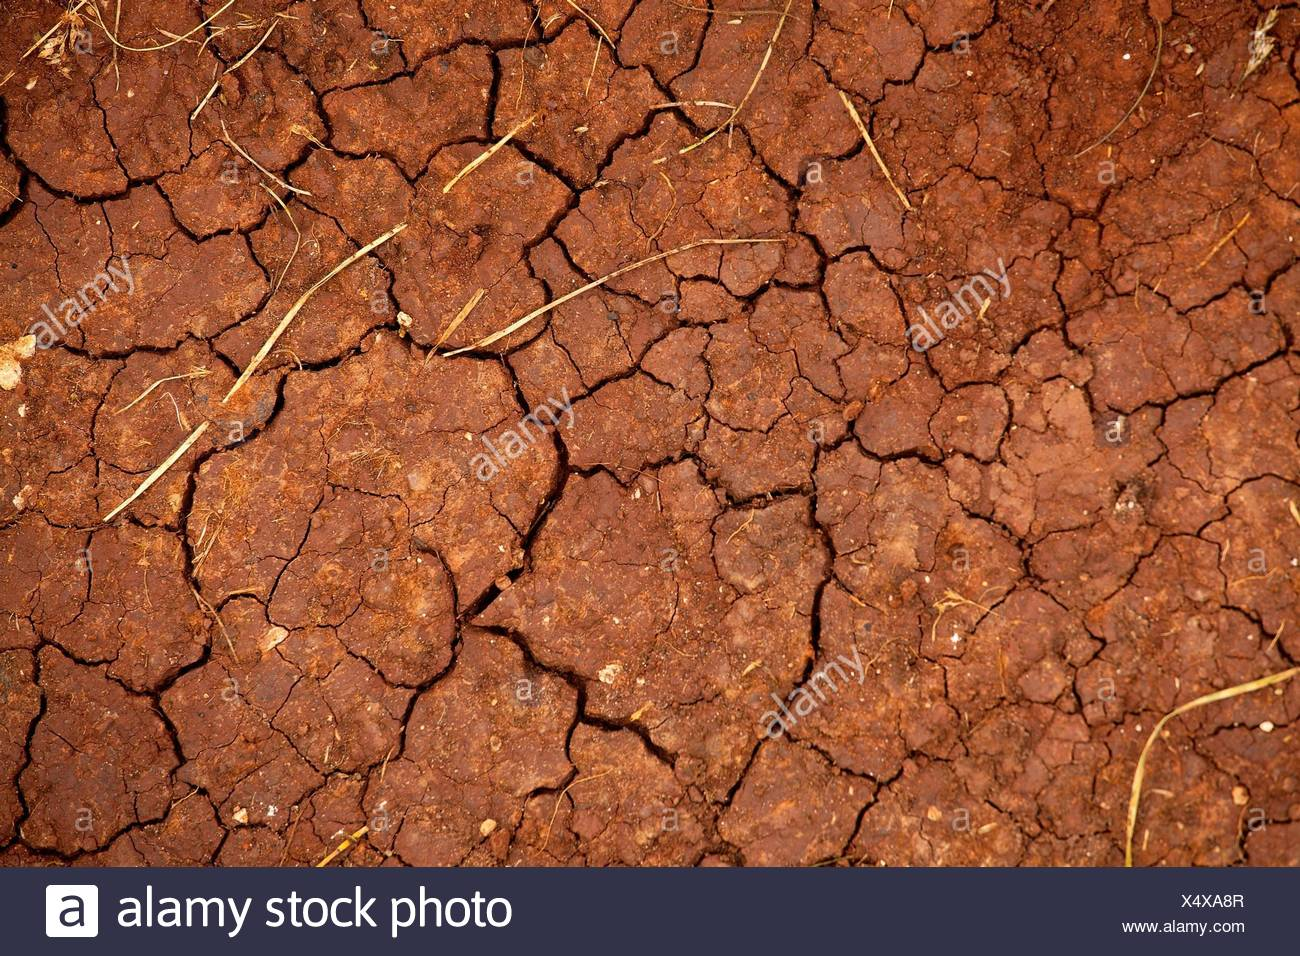 Dried out soil texture closep - Stock Image